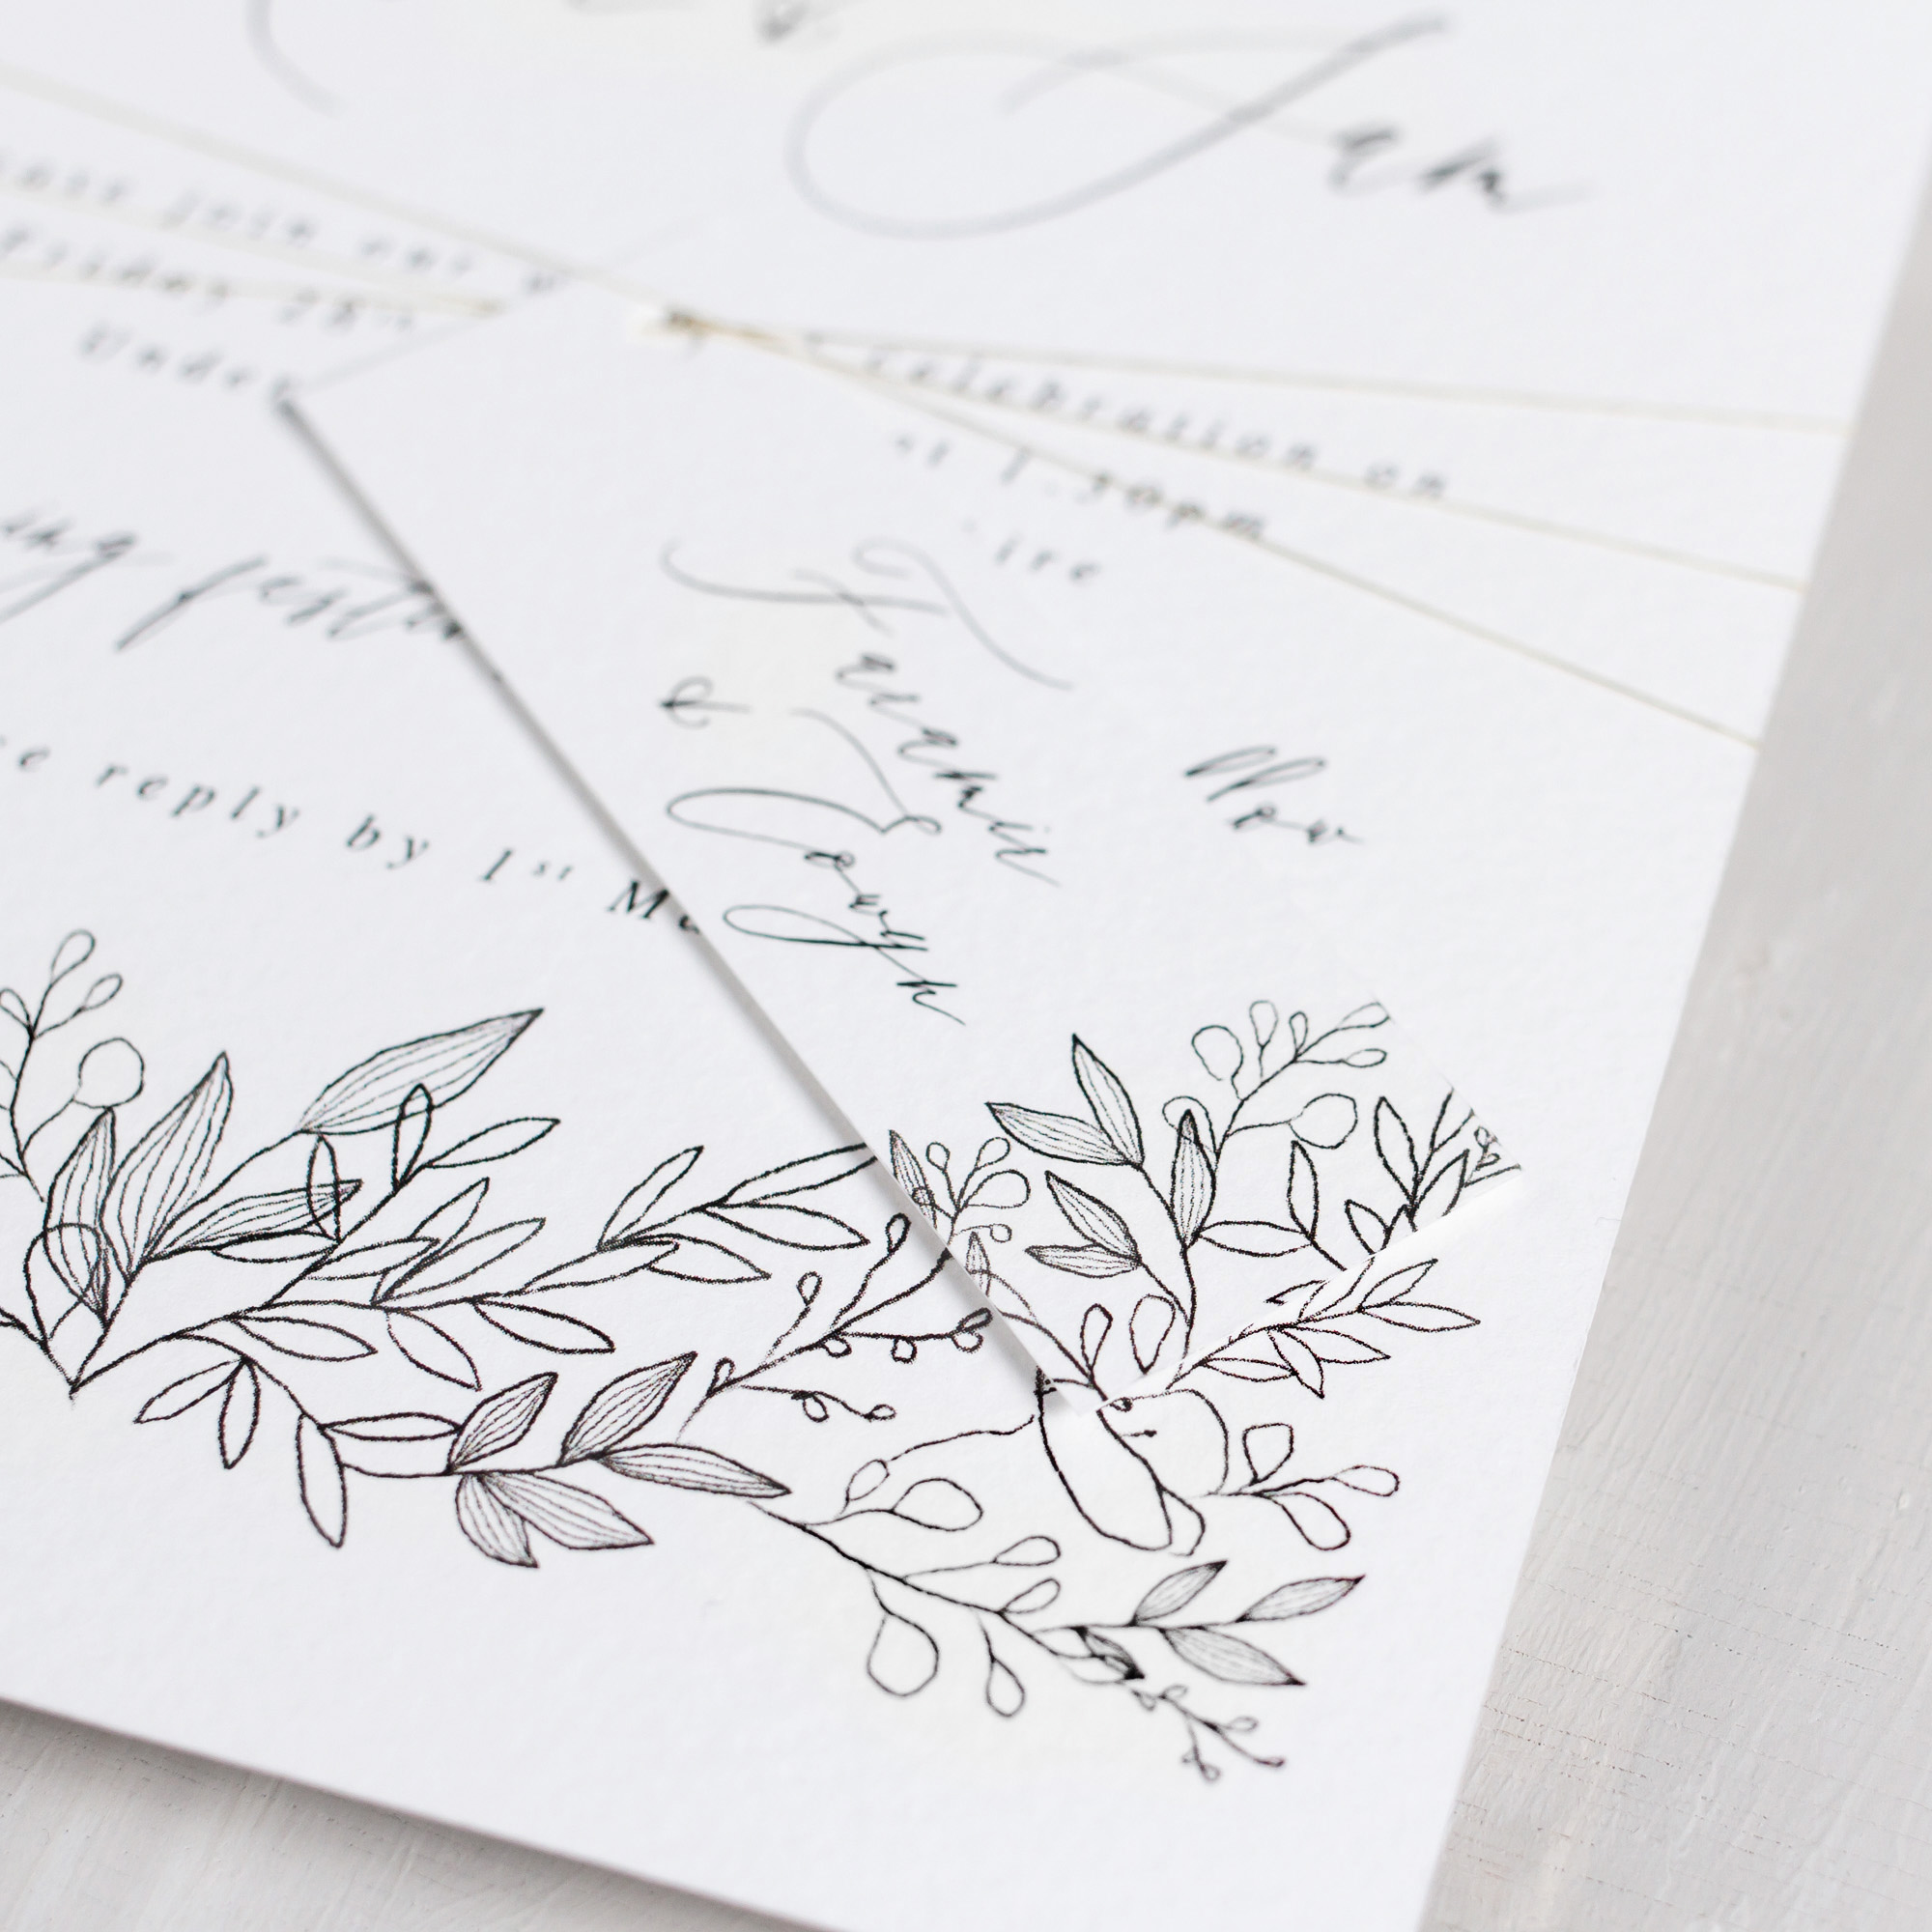 Luxury-Wedding-Stationery-Unique-Illustrated-Floral-Botanical-Leaves-Flowers-Spring-Summer-Wedding-Invitation-Parcel-Close-Up-Goldberry-Pingle-Pie.jpg.jpg